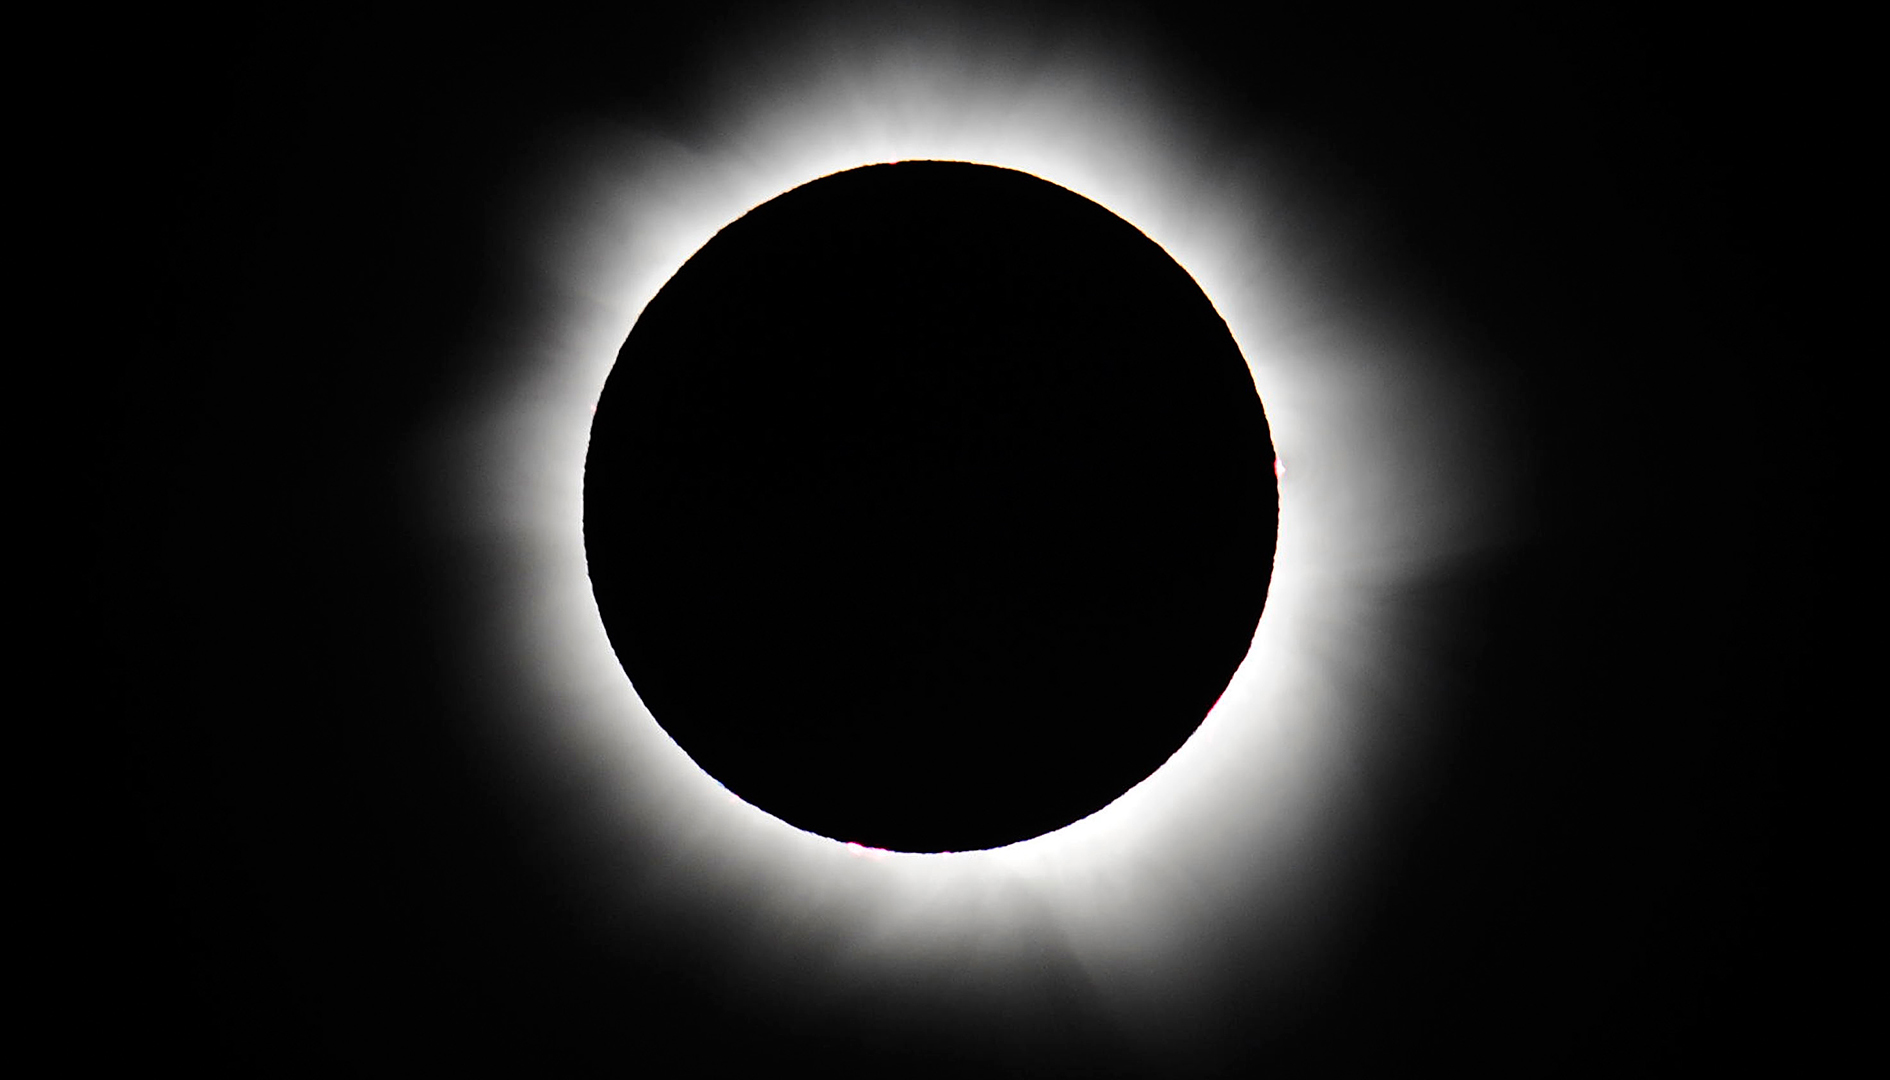 Expected Travel Time Solar Eclipse